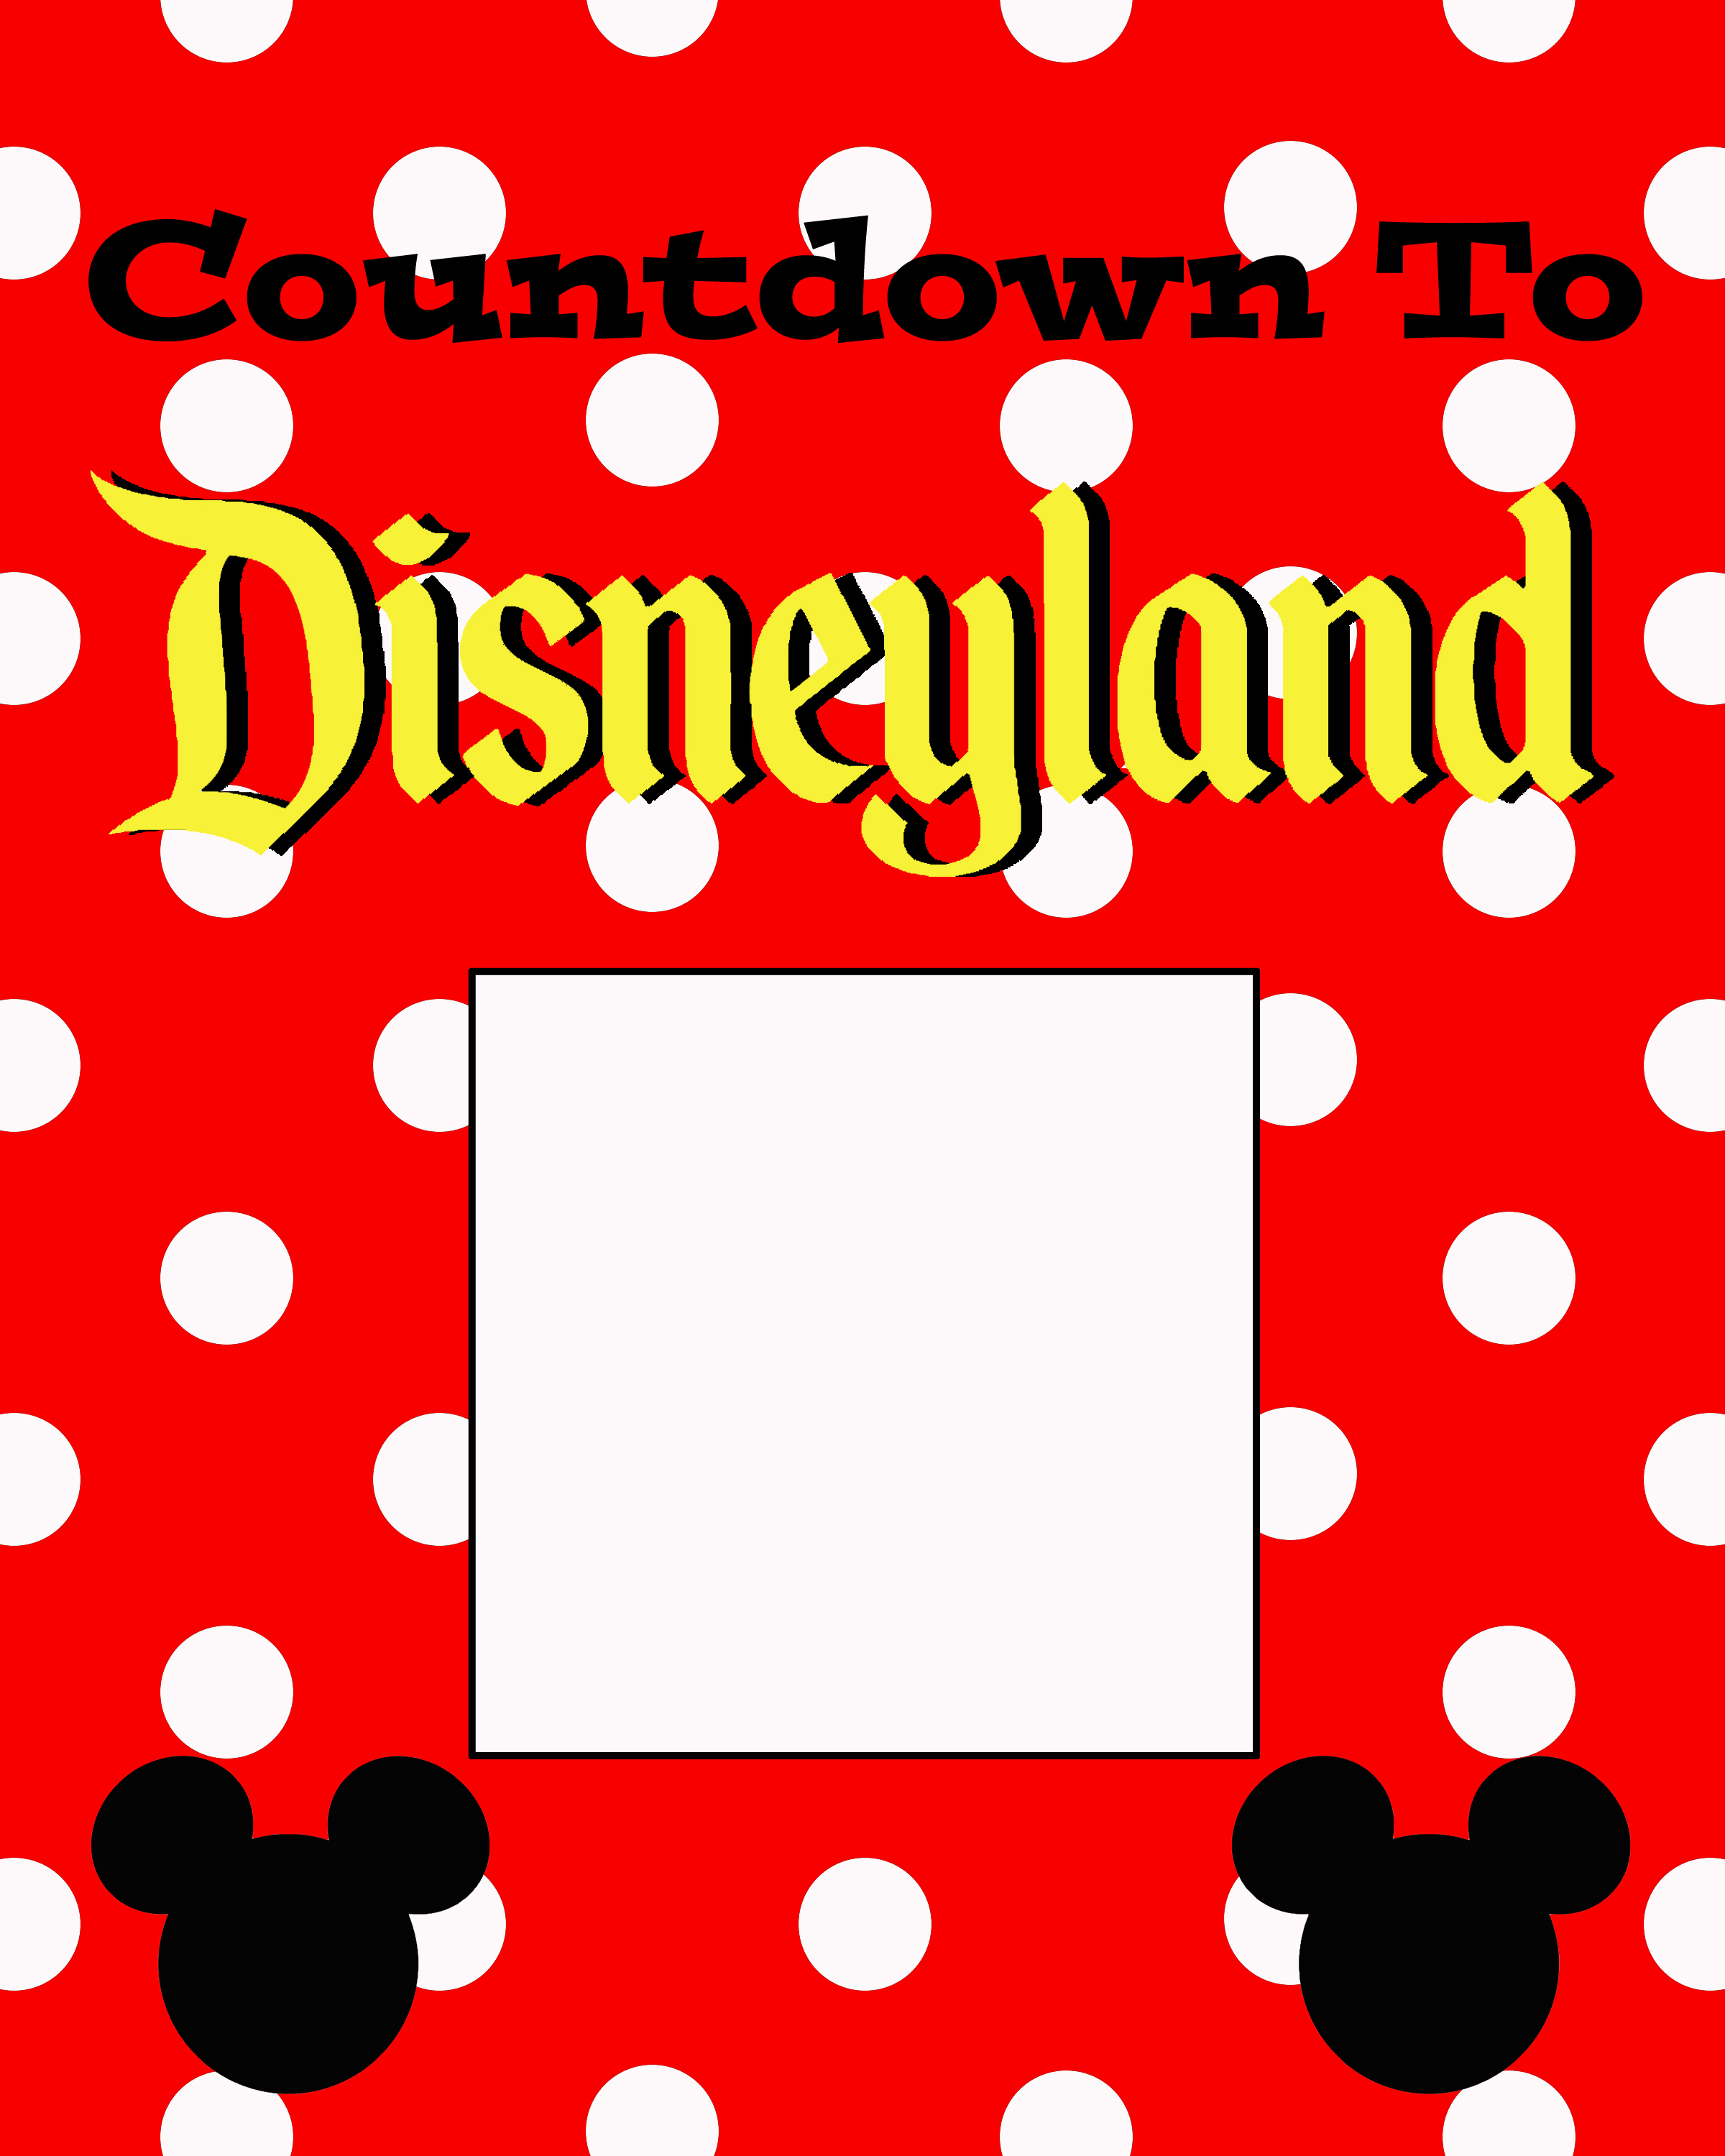 Free Countdown To Disneyland Printable - The Suburban Mom